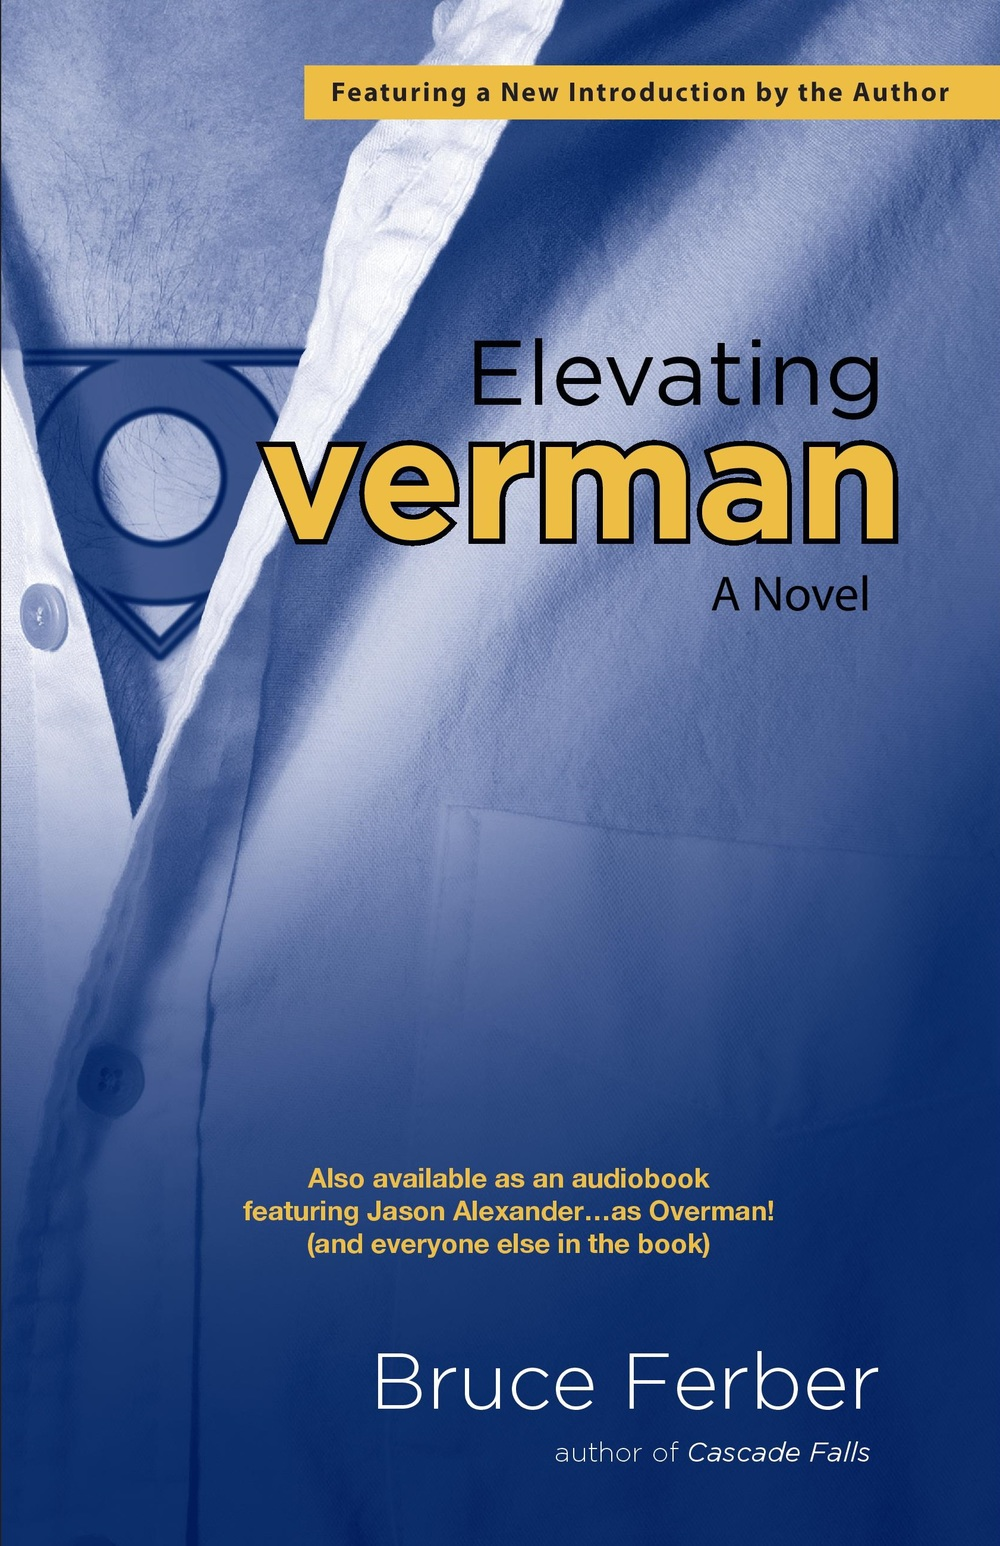 Elevating Overman is a funny and painful story of redemption that explores the complex ramifications of what it means to get a second chance.